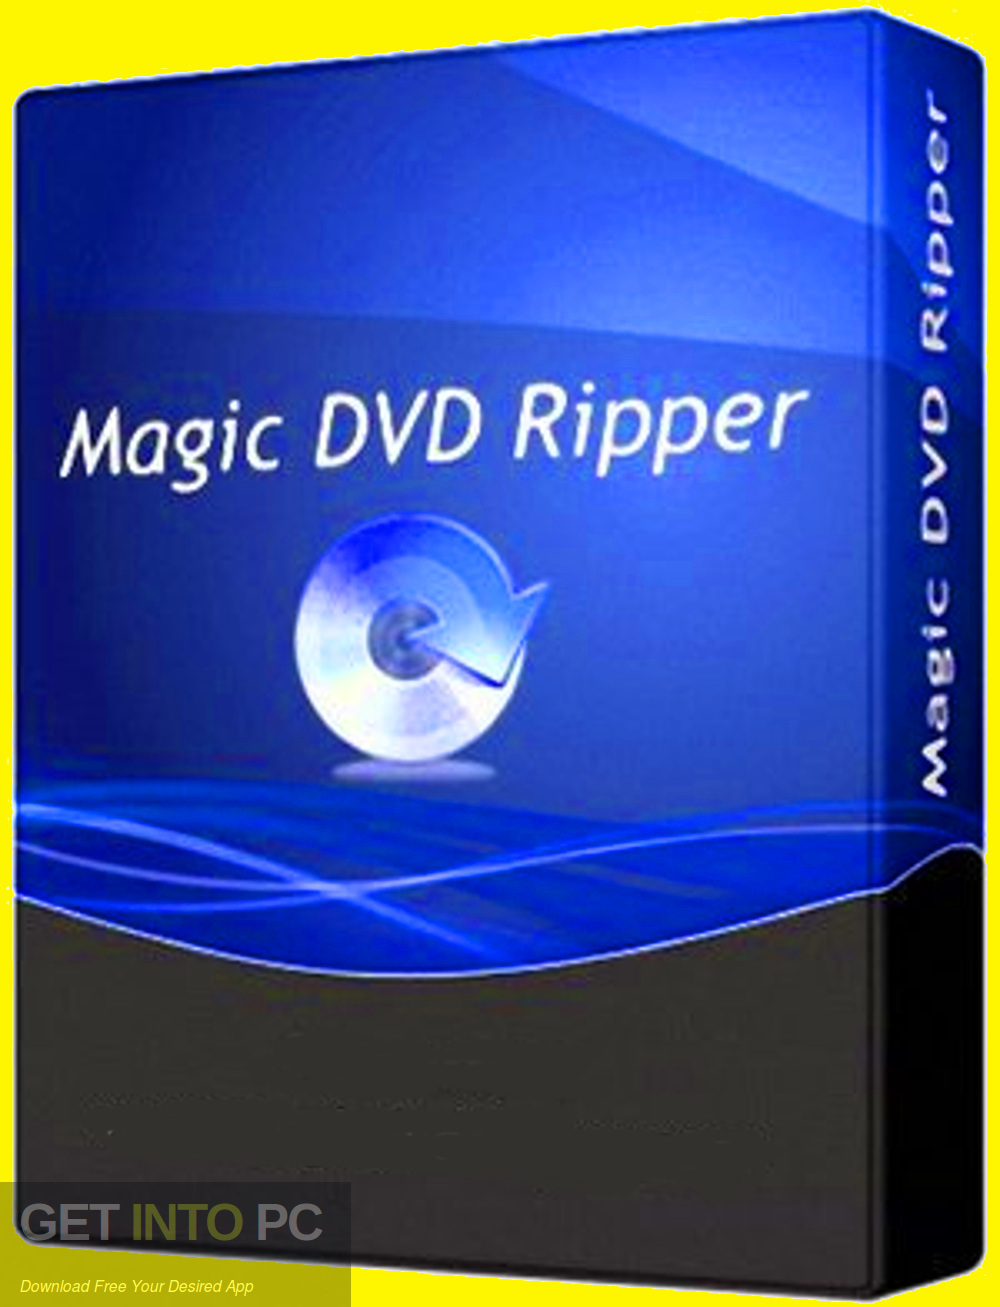 Magic DVD Ripper 2019 Free Download-GetintoPC.com